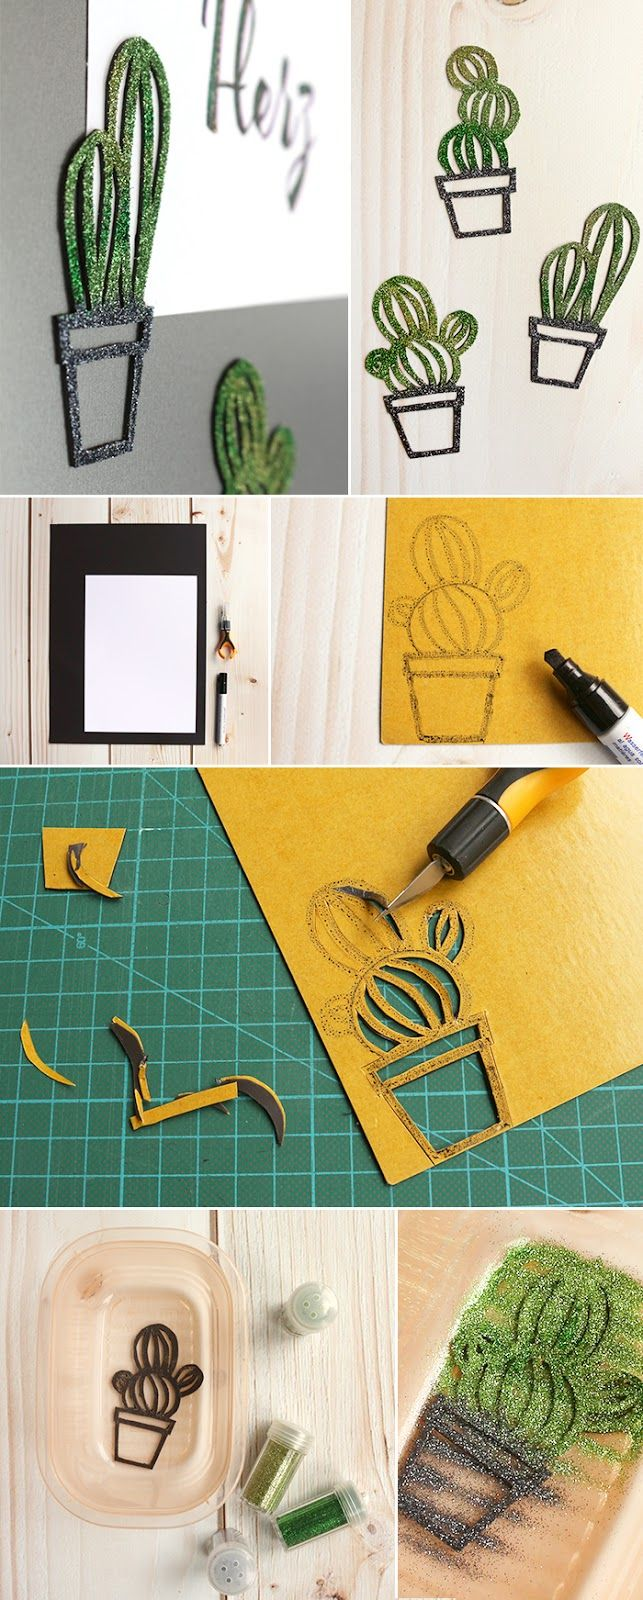 DIY Gingered Things magnets cactus decoration crafting